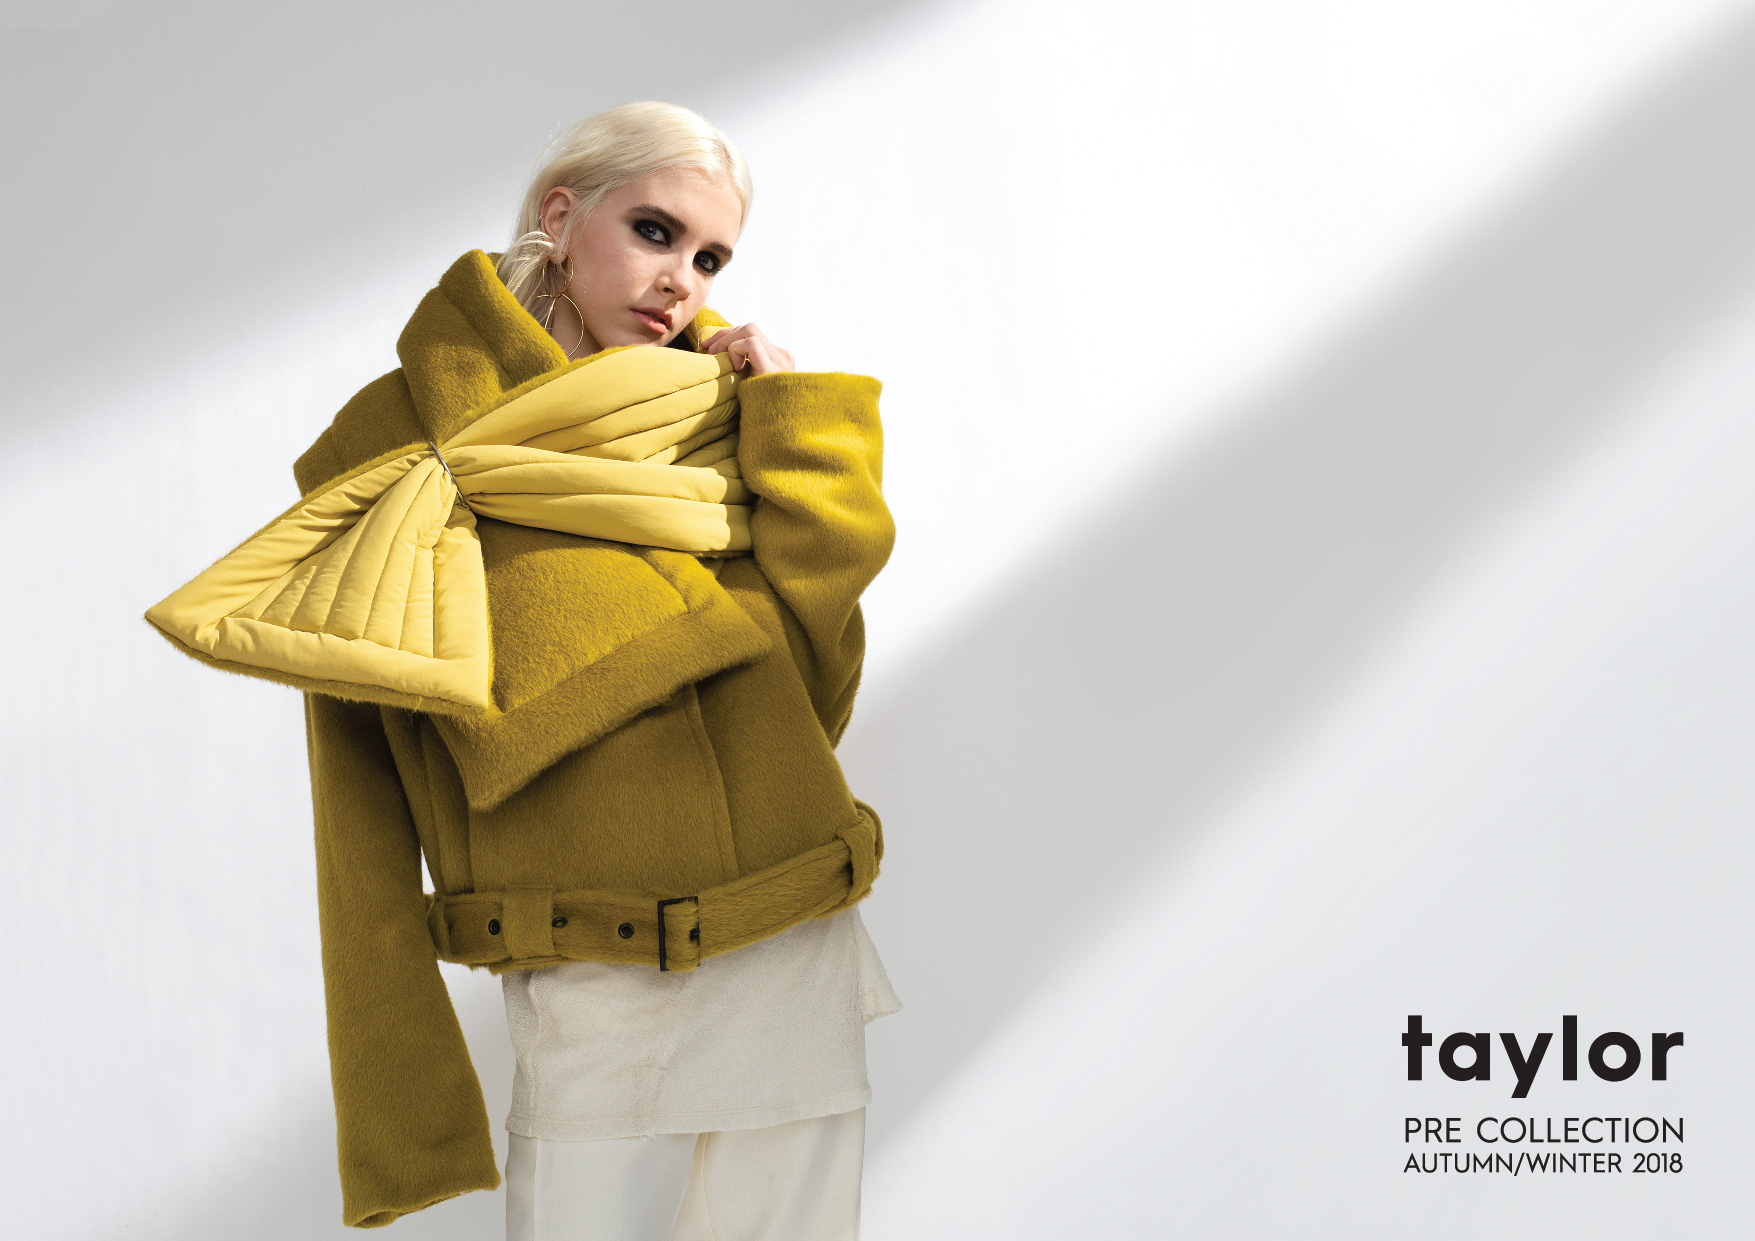 Taylor AW19 Precollection Lookbook 1